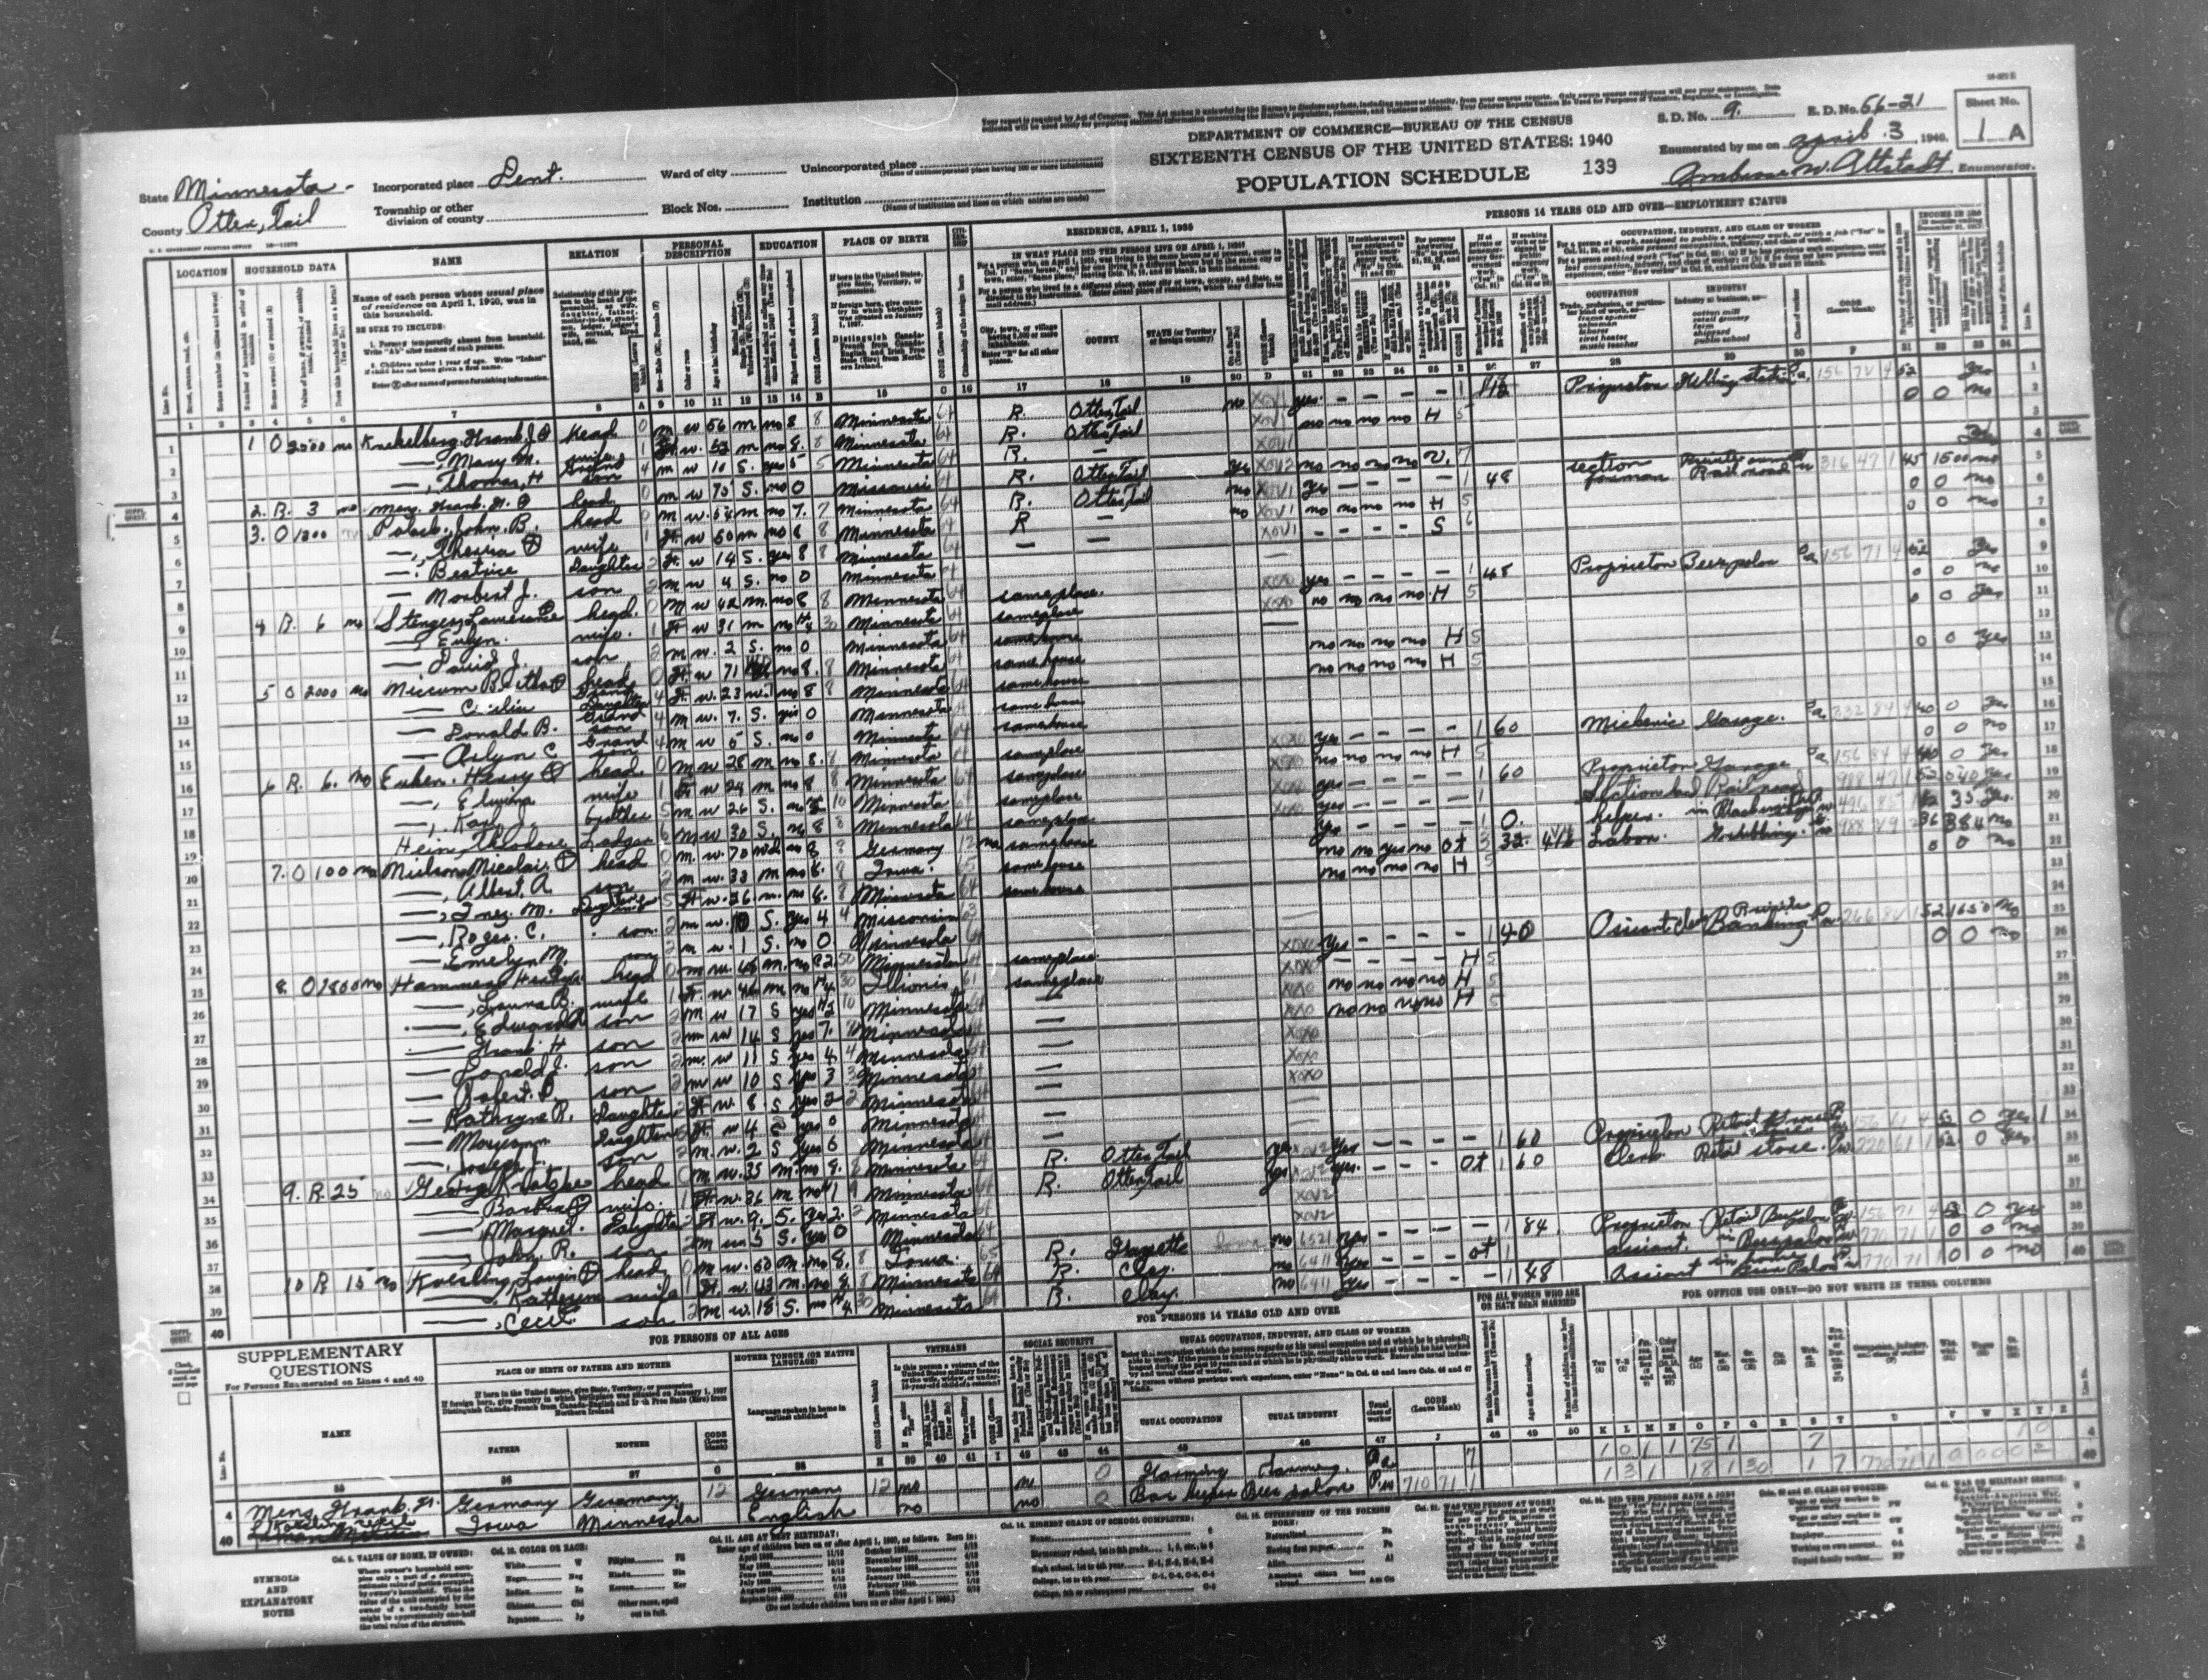 1940 Census Population Schedules - Minnesota - Otter Tail County - ED 56-21